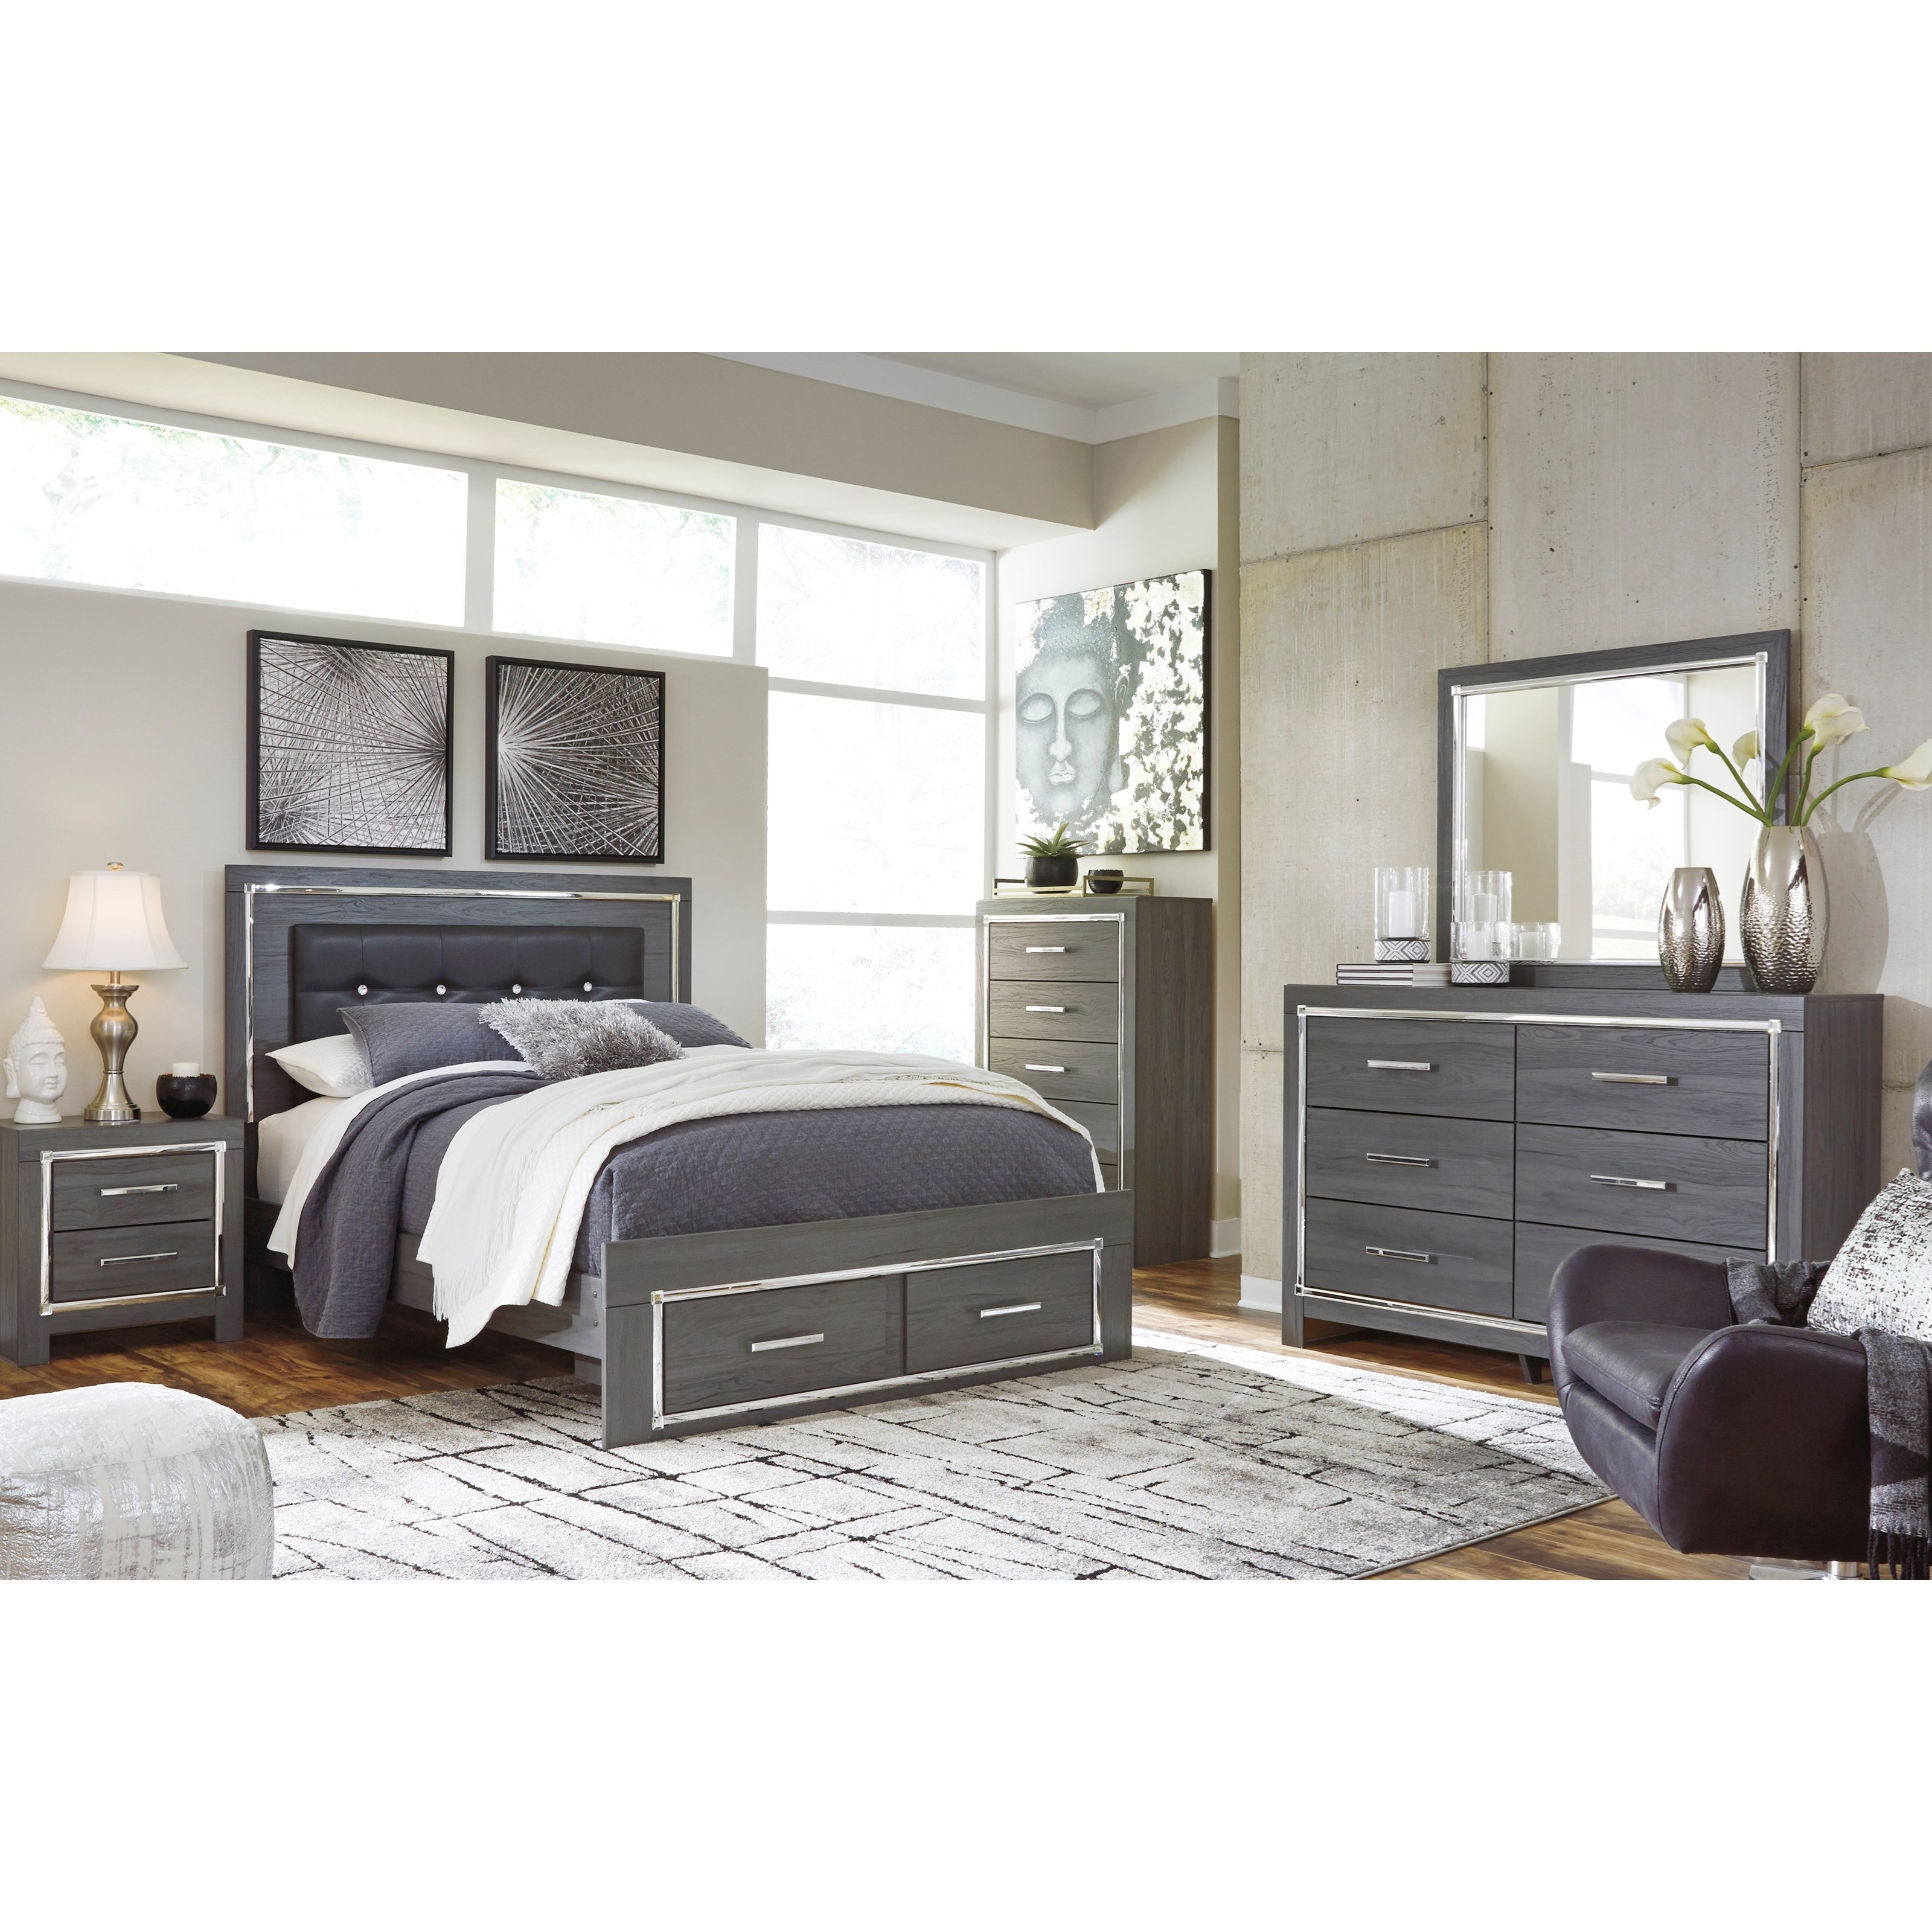 Lodana Queen Bedroom Group by Signature Design by Ashley at Nassau Furniture and Mattress